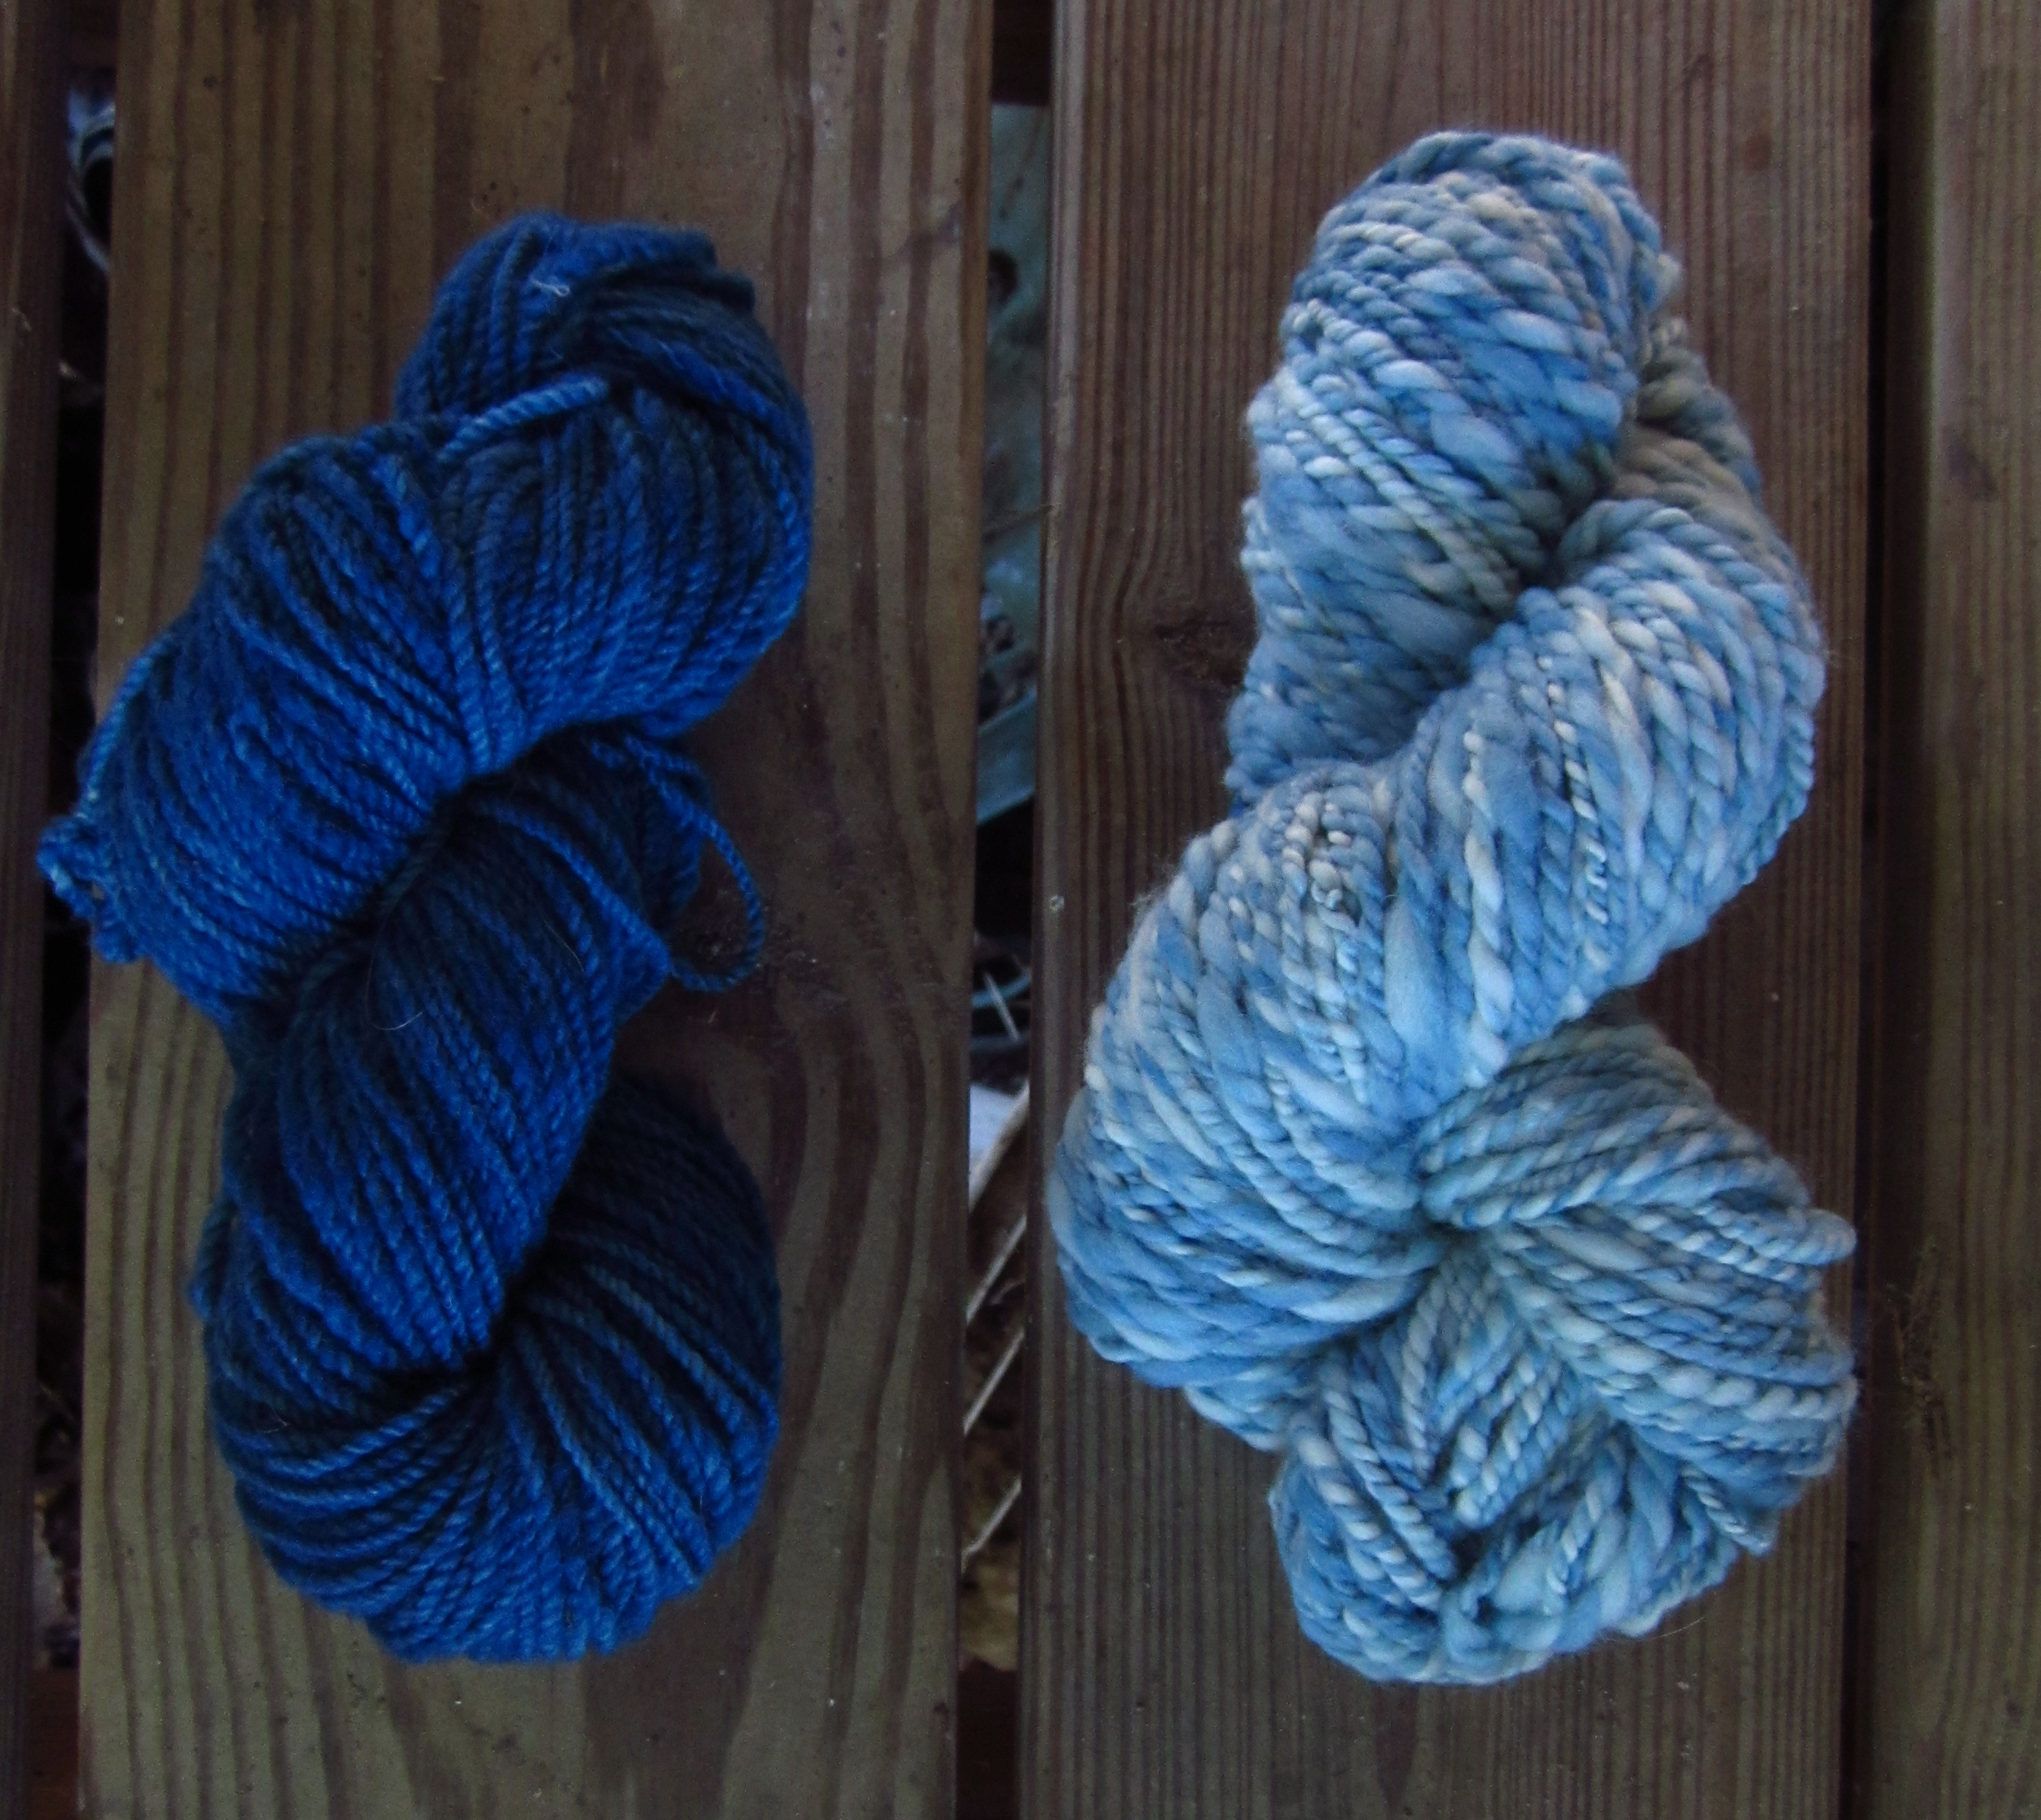 The Dark One Is The First Dye Bath And The Second Is Roving That Was Dyed Unevenly In The Second Batch And Then Spun.